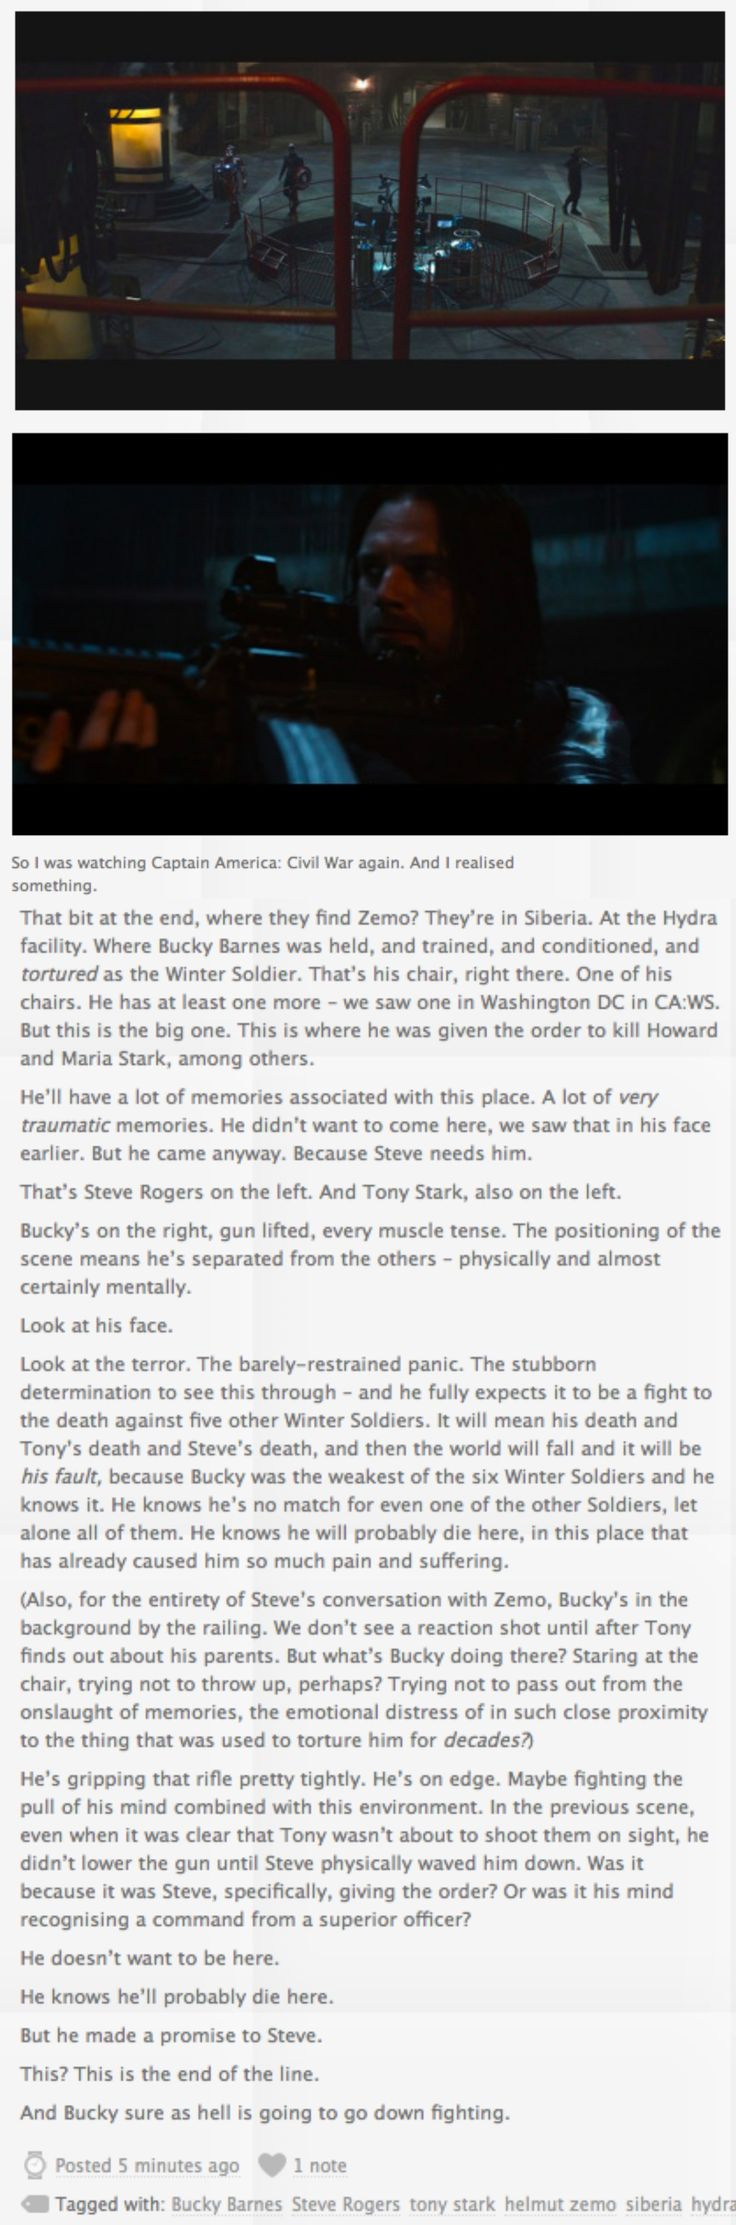 Source: http://the-hobbits-smial.tumblr.com/post/157478883829/so-i-was-watching-captain-america-civil-war Bucky Barnes, Hydra, Steve Rogers, Torture, Captain America: Civil War